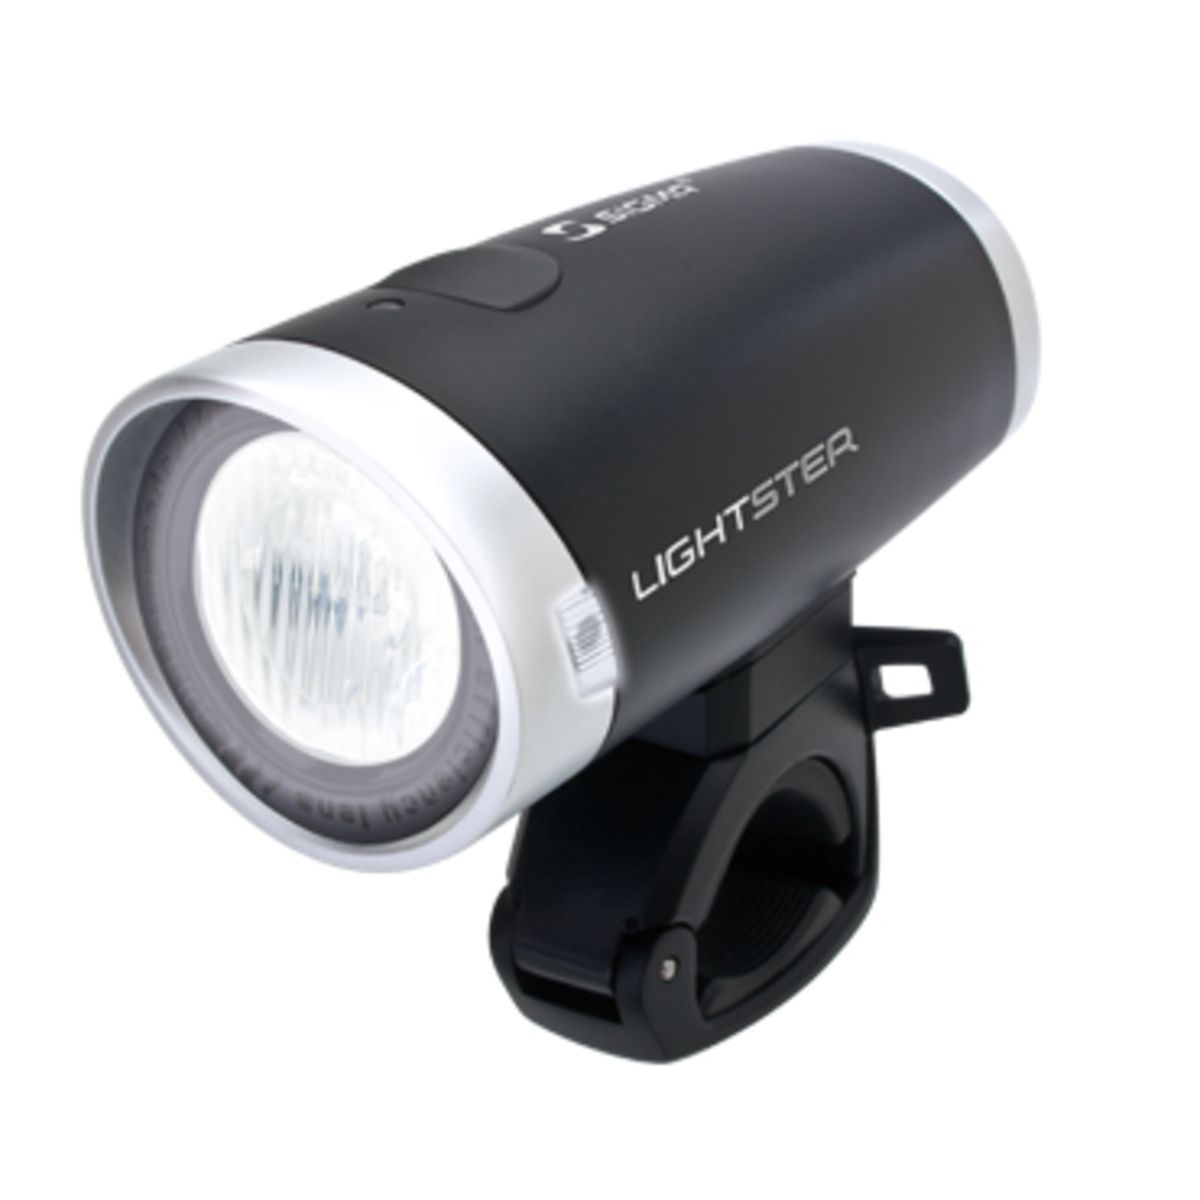 Lightster LED front light